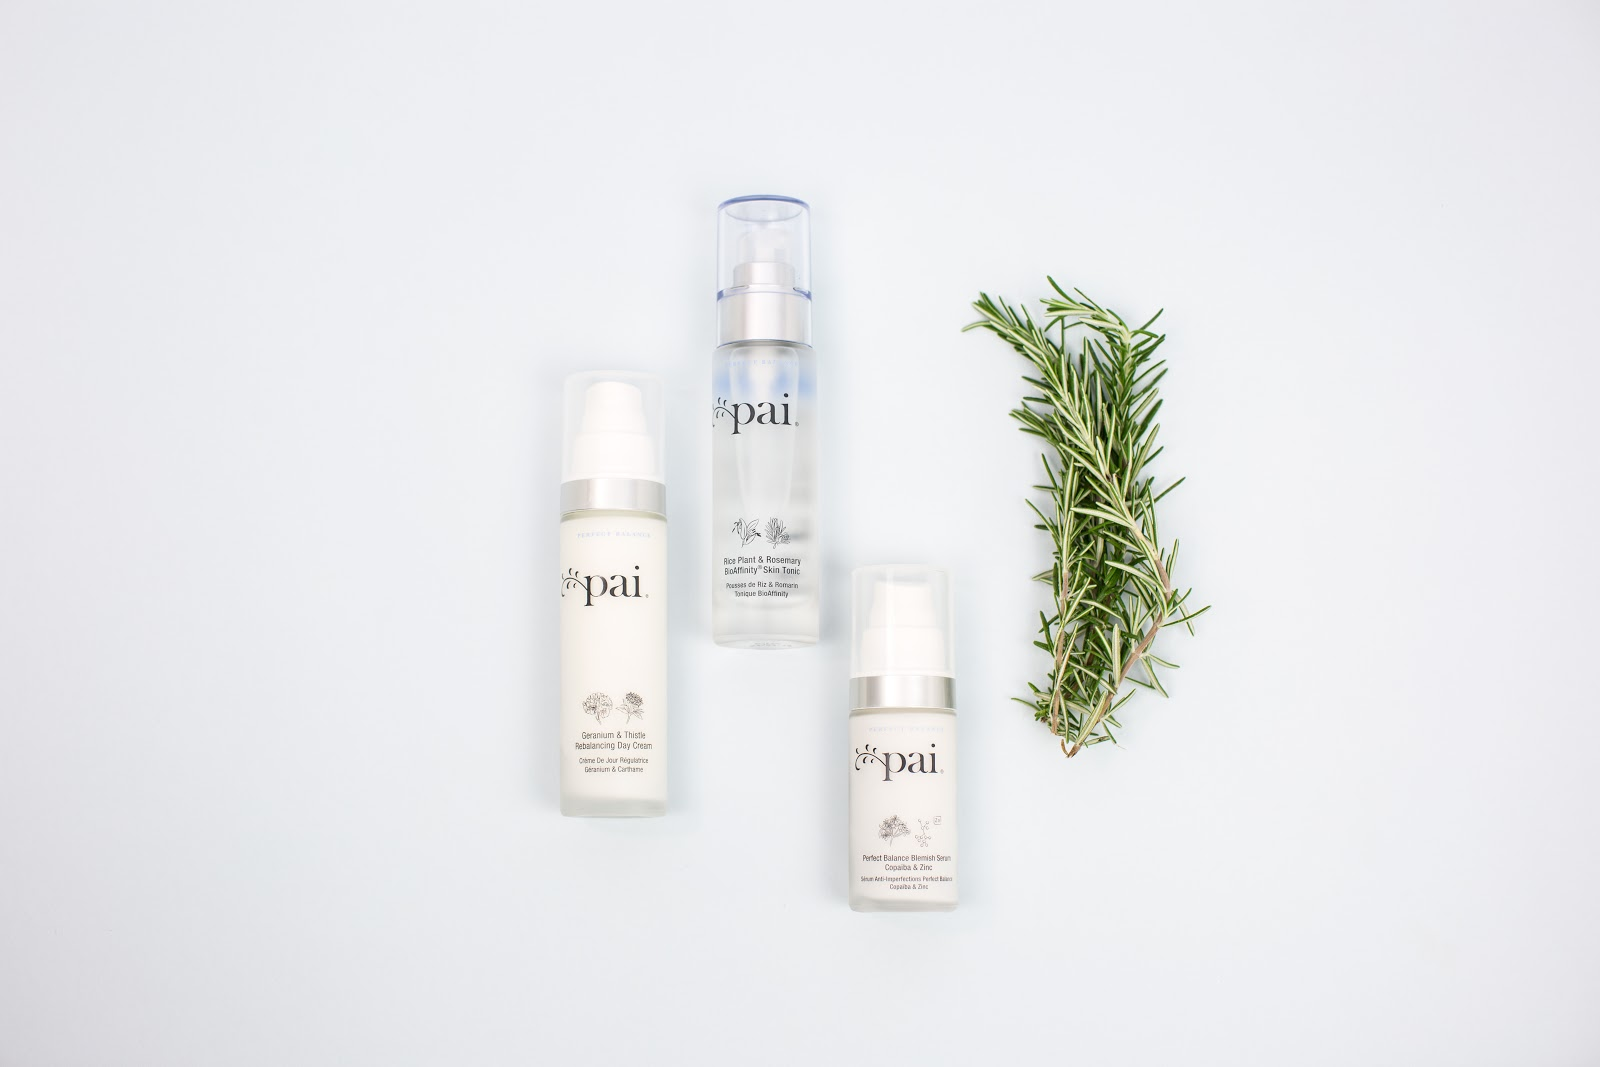 CURRENTLY TESTING: PAI SKINCARE - CRUELTY FREE + VEGAN SKINCARE YOU NEED TO TRY